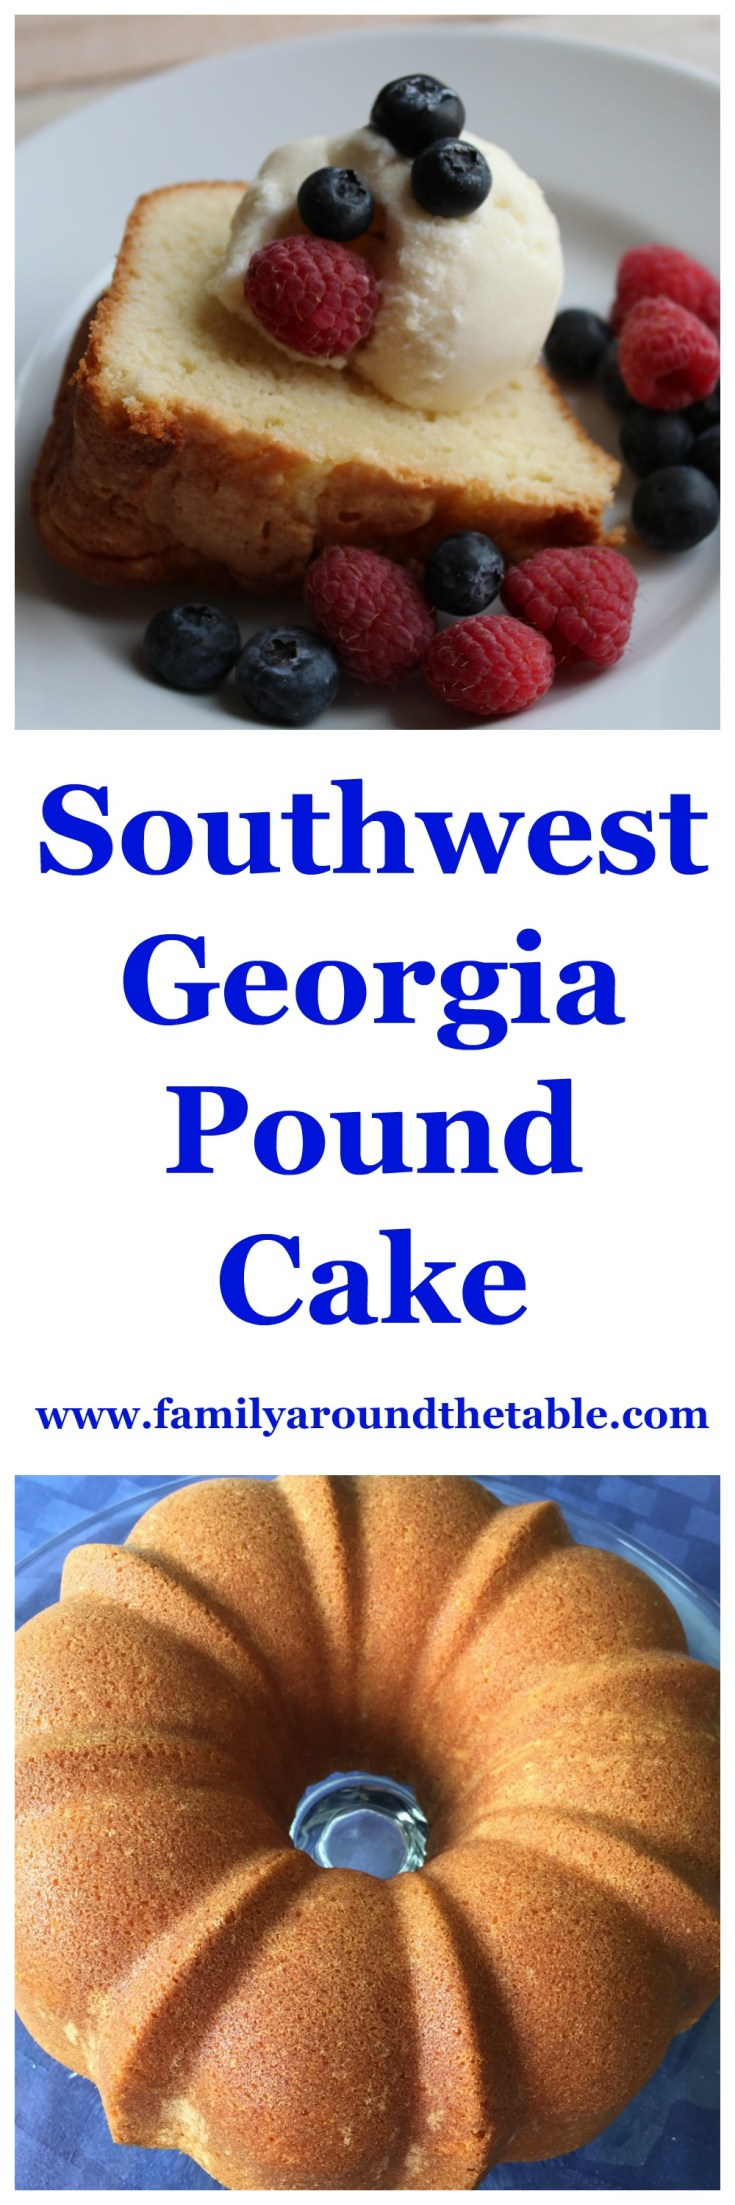 This Southwest Georgia Pound Cake was my Mom's recipe. They are the best.